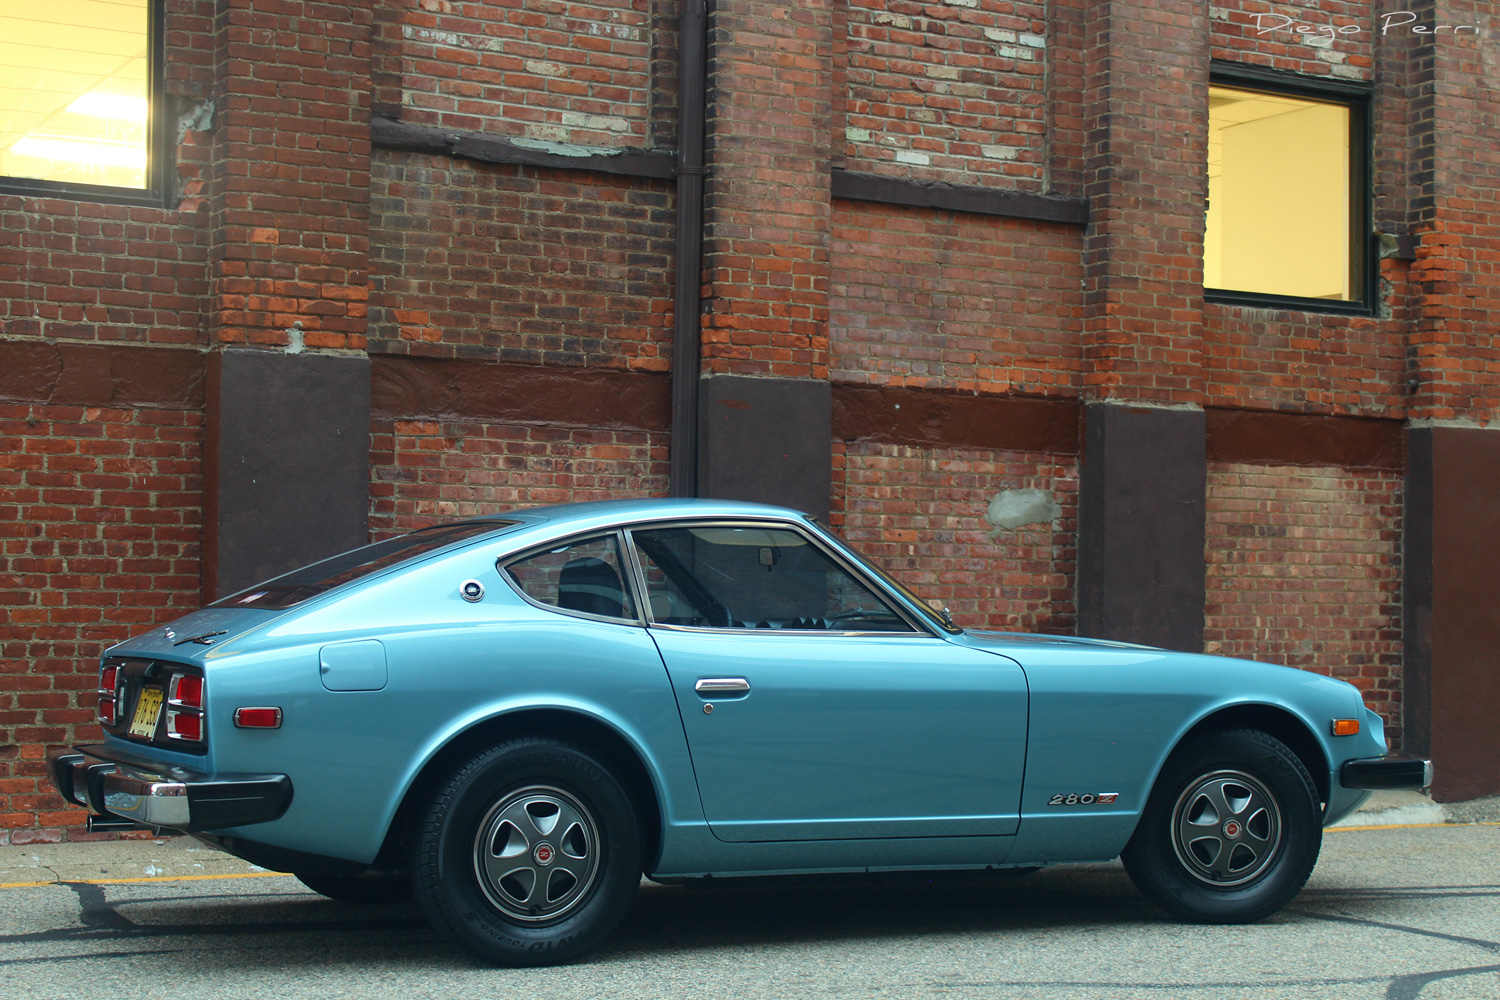 1976 Datsun 280Z side profile brick wall